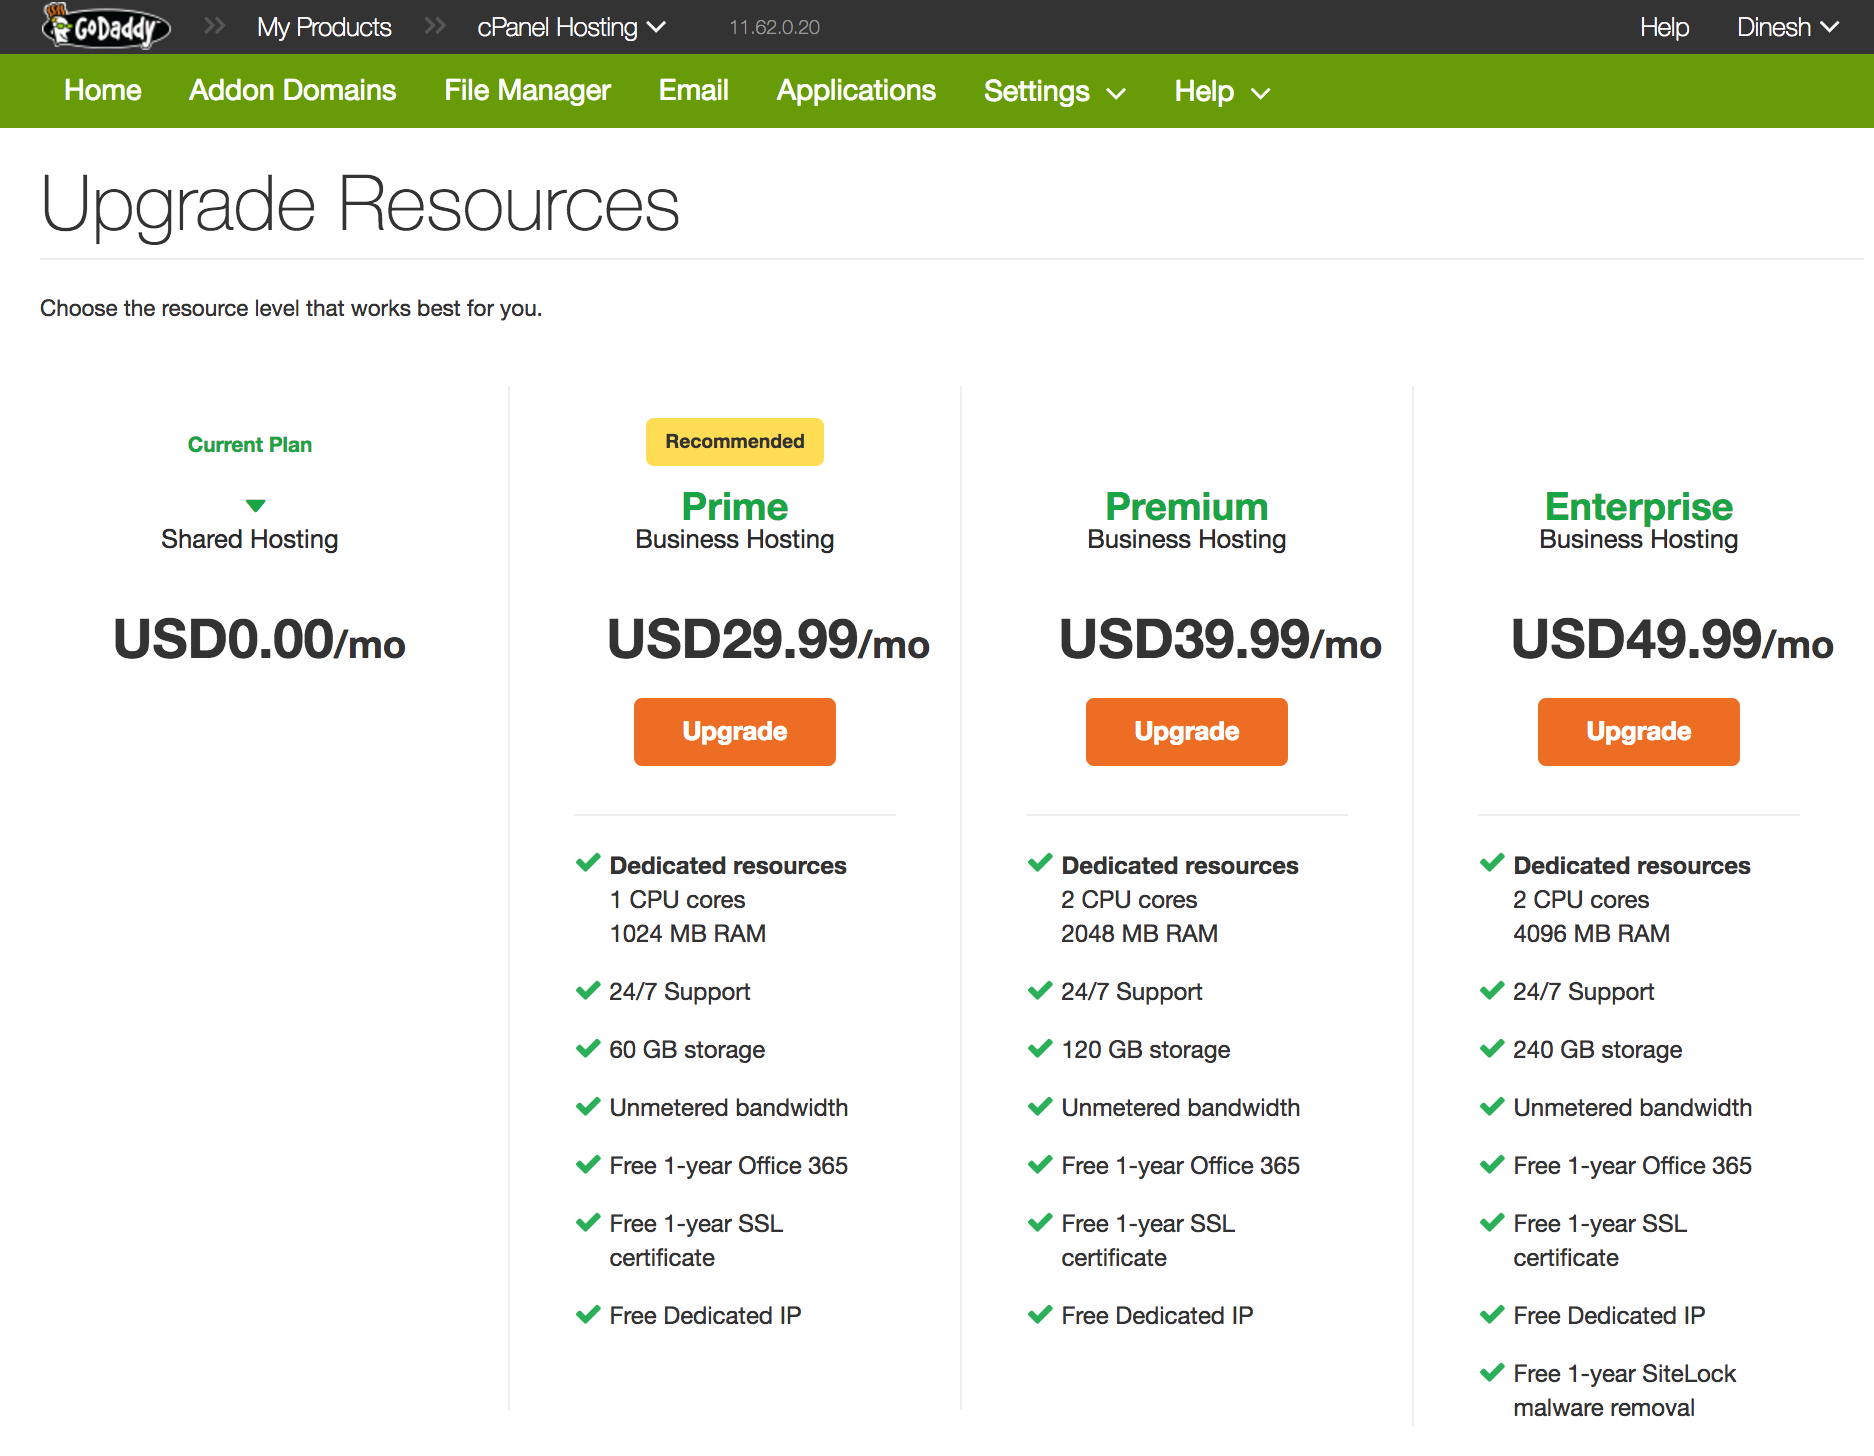 Godaddy business plan comparison